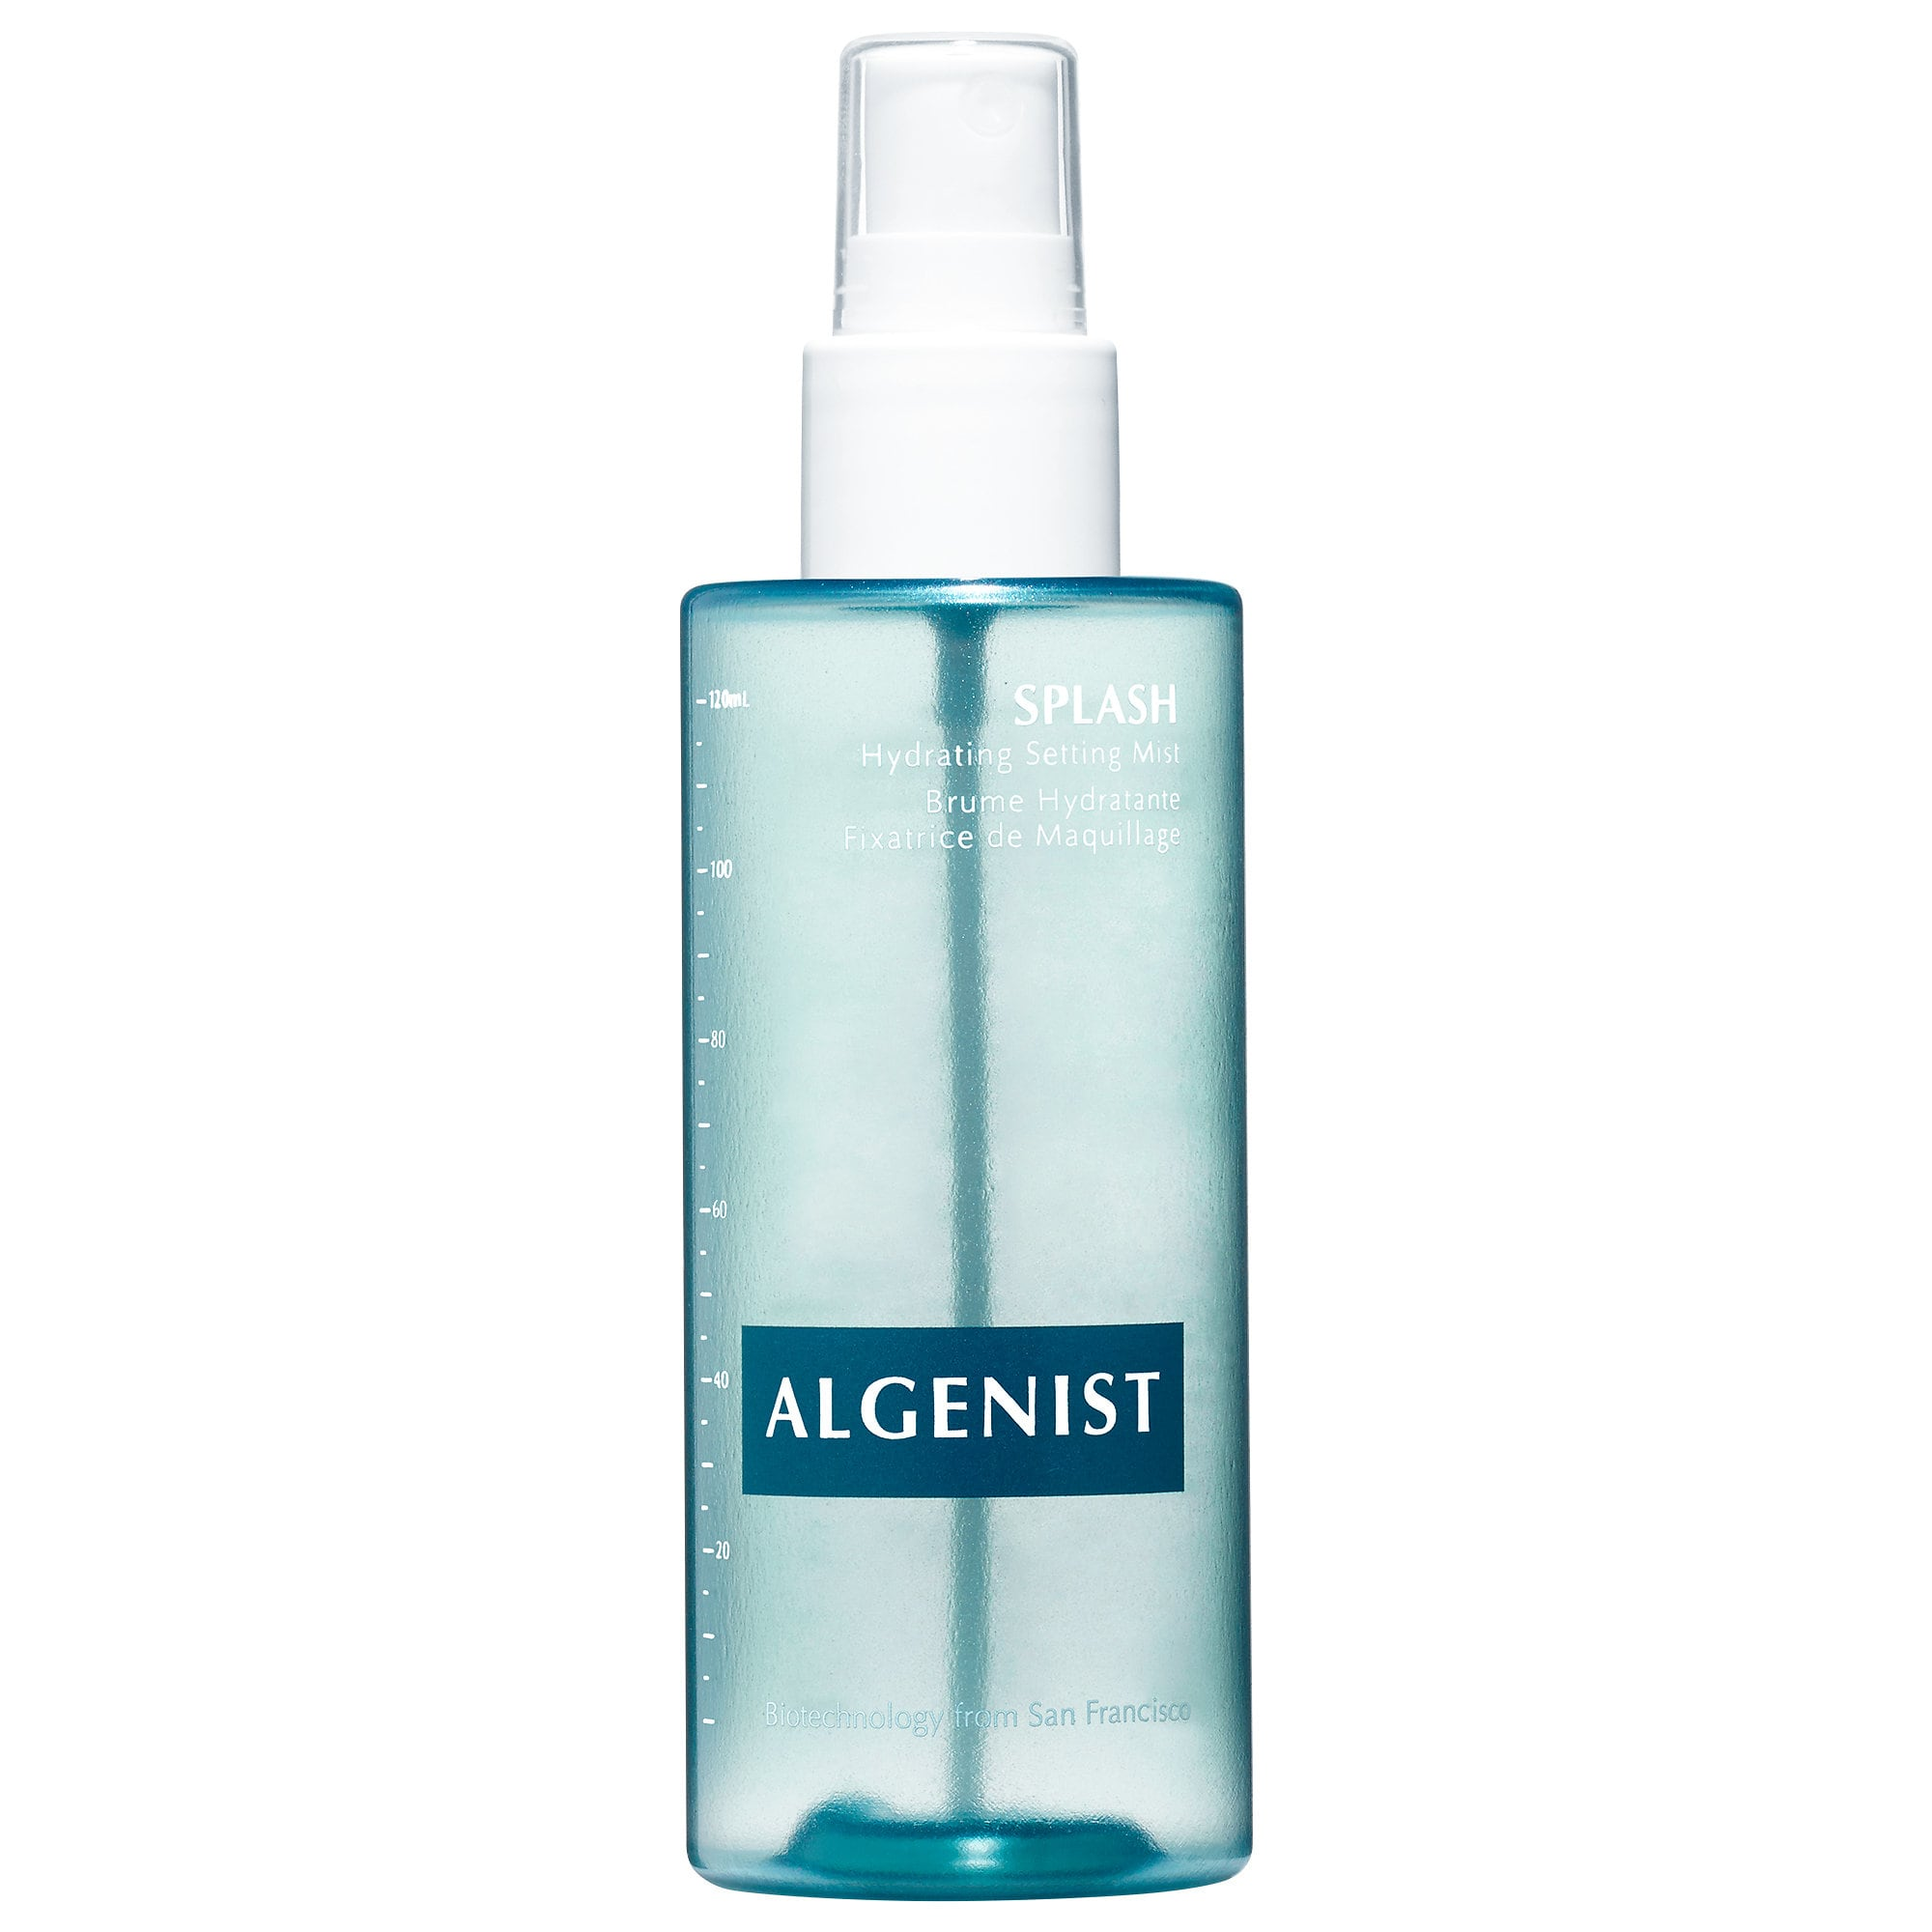 Algenist Splash Hydrating Setting Mist